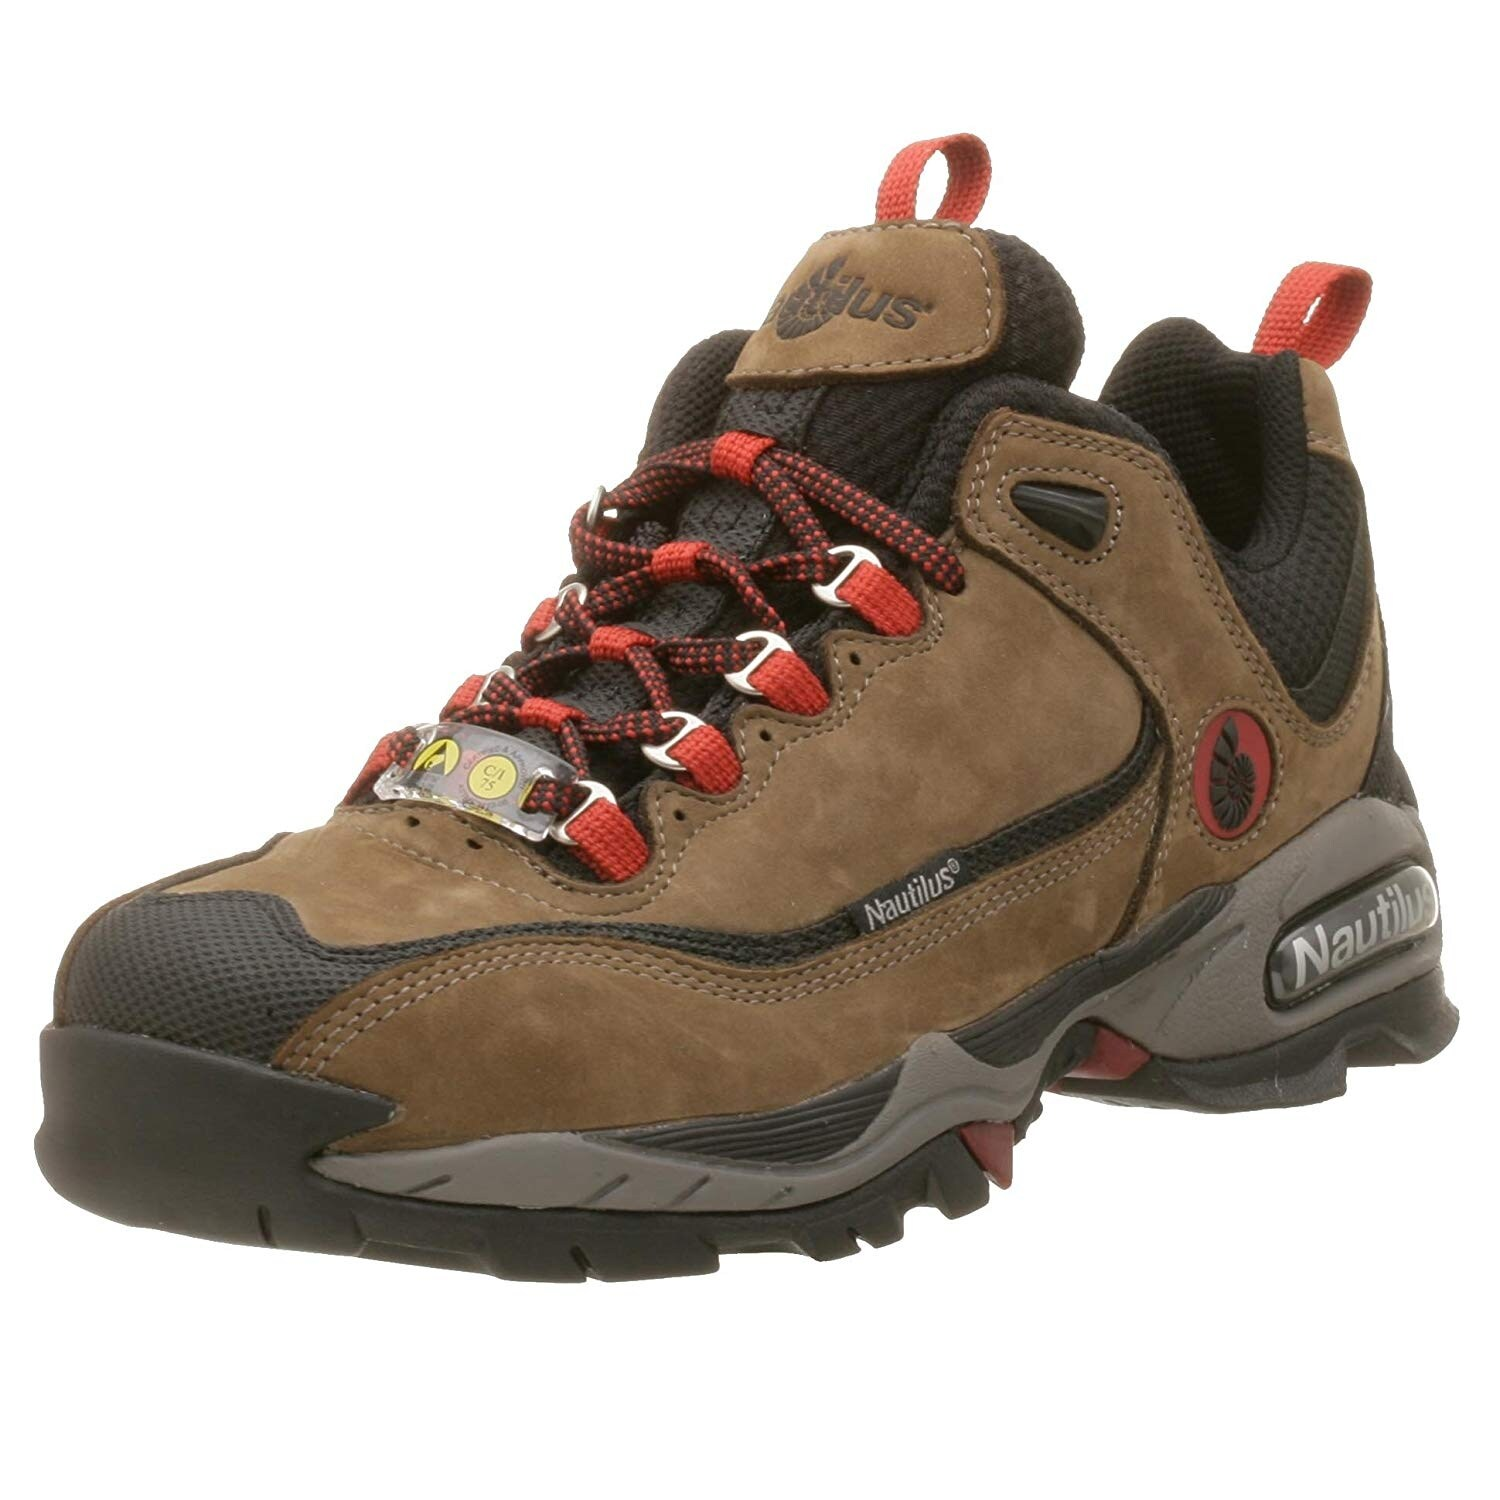 9efd4f2d176 Nautilus 1392 ESD Safety Toe Athletic Shoe - 15